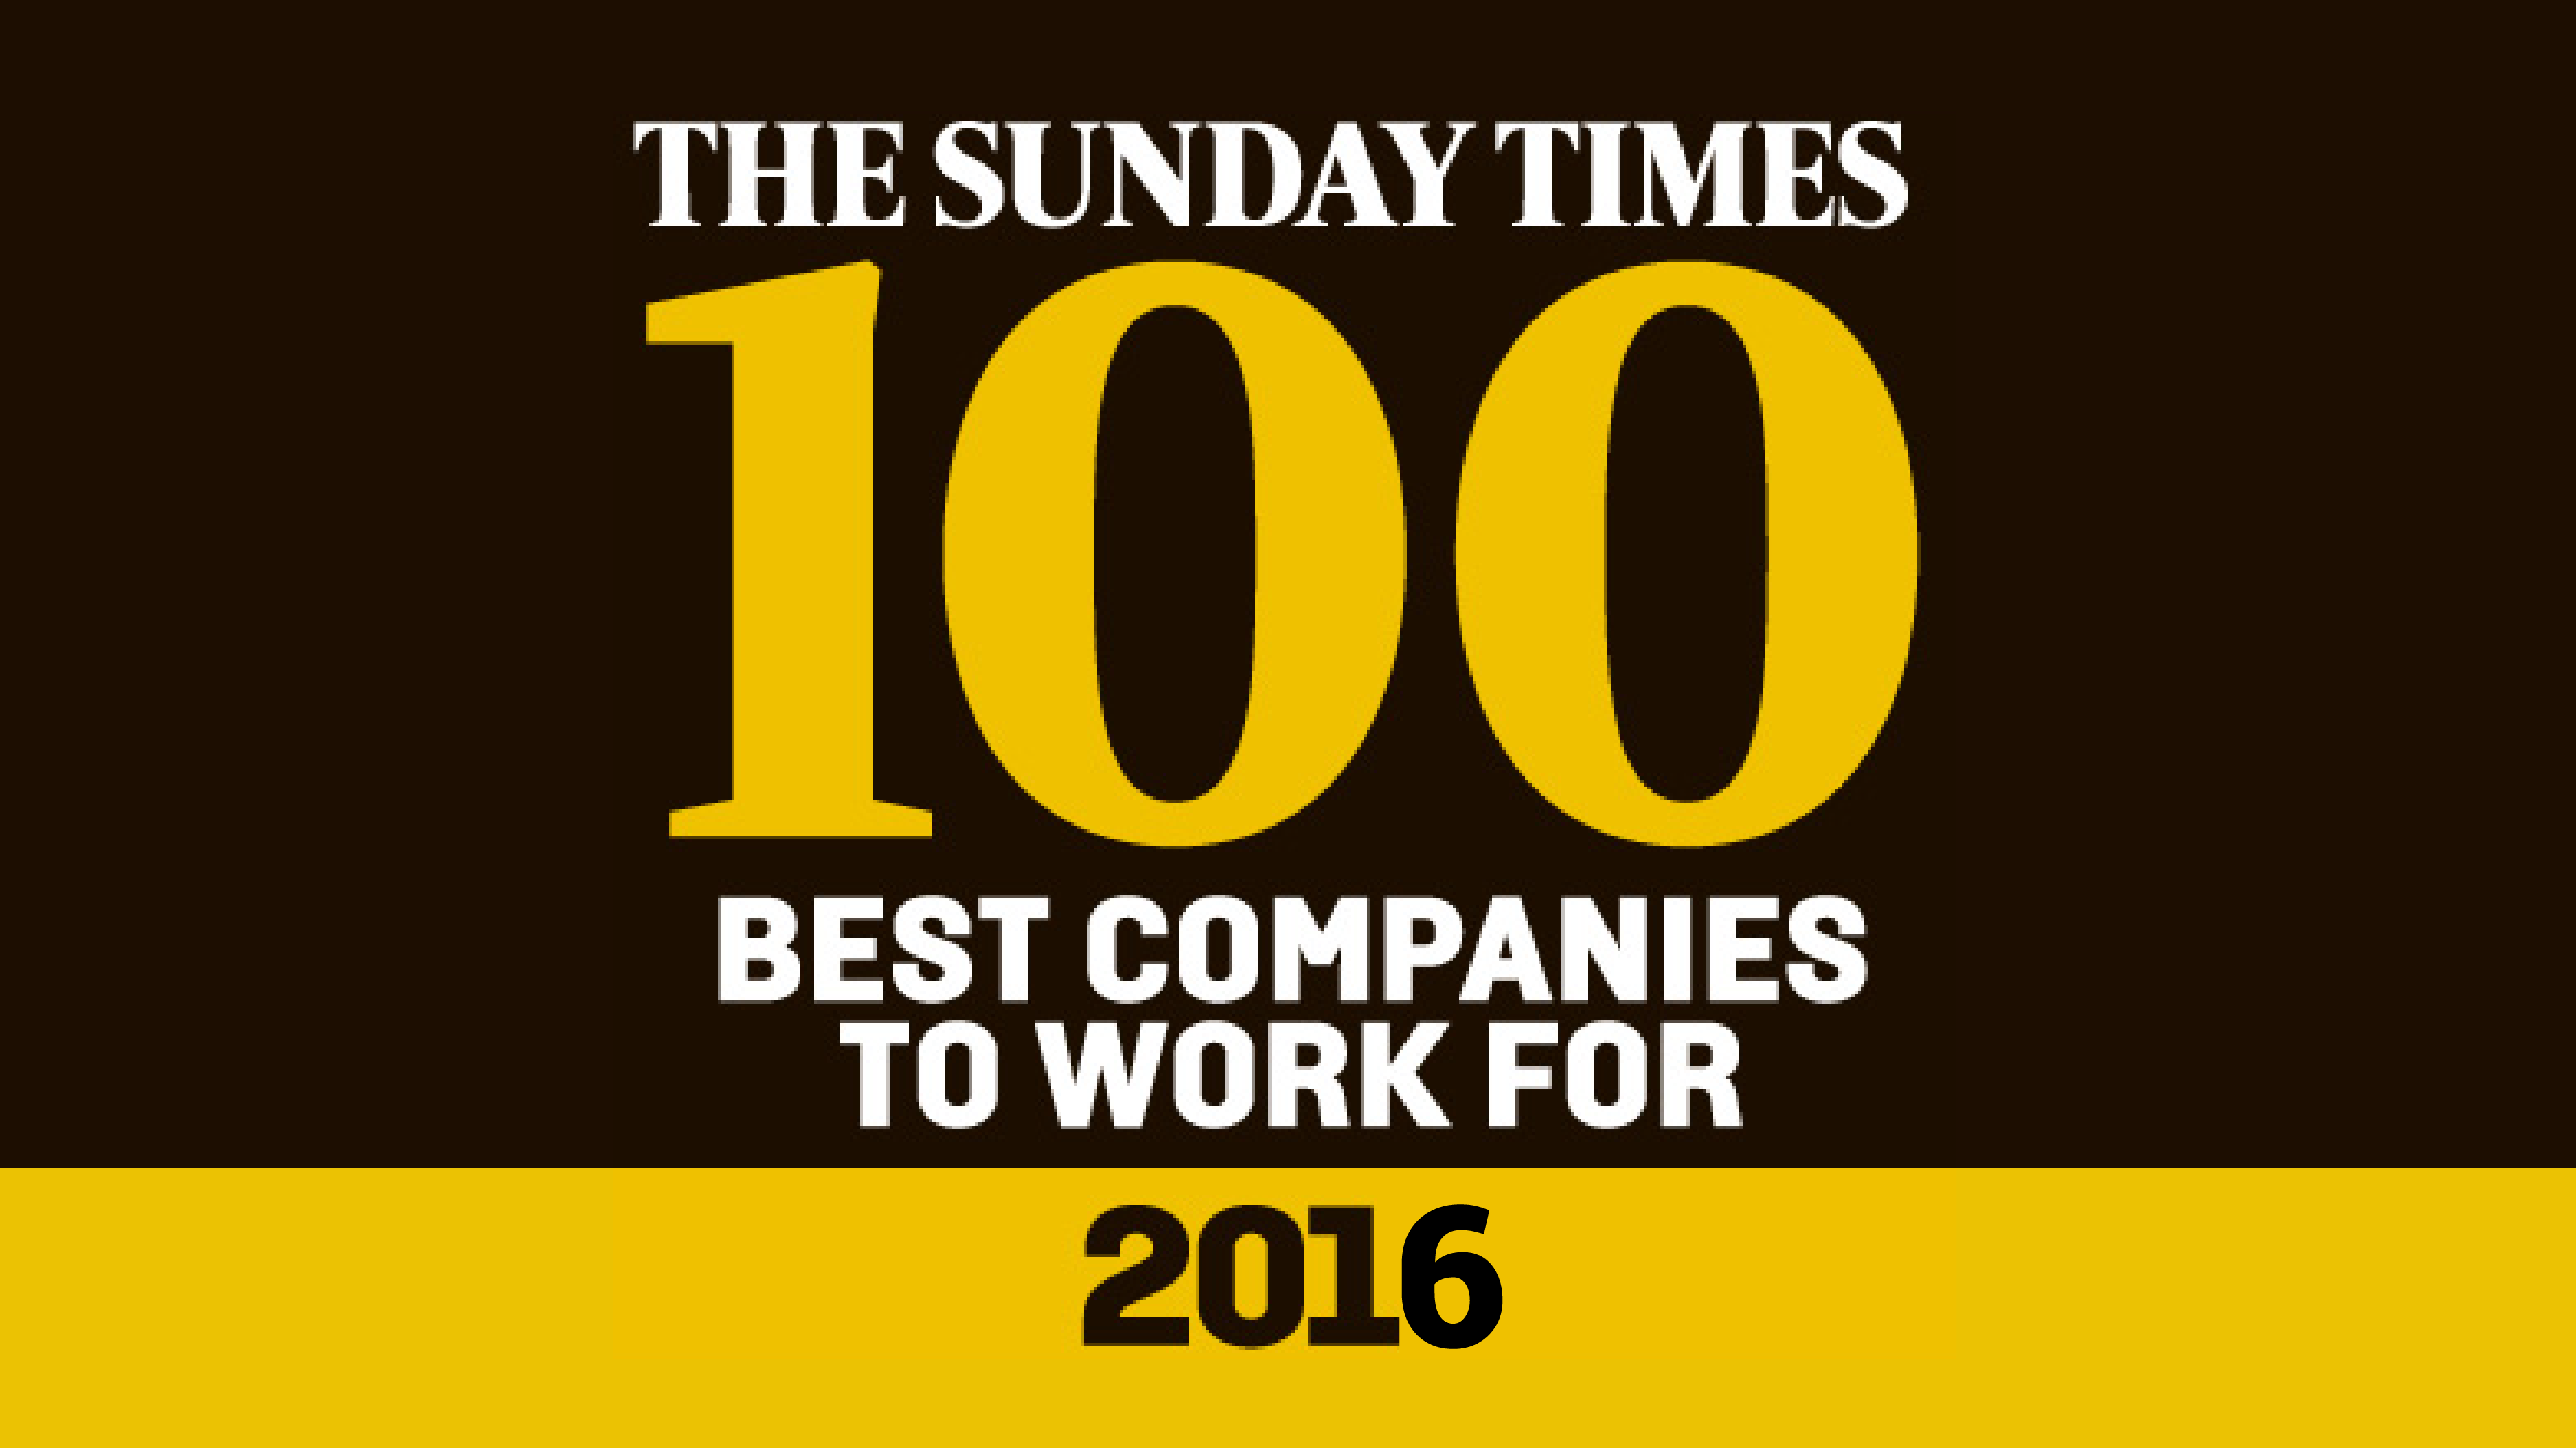 [Ranked 30th in The Sunday Times]